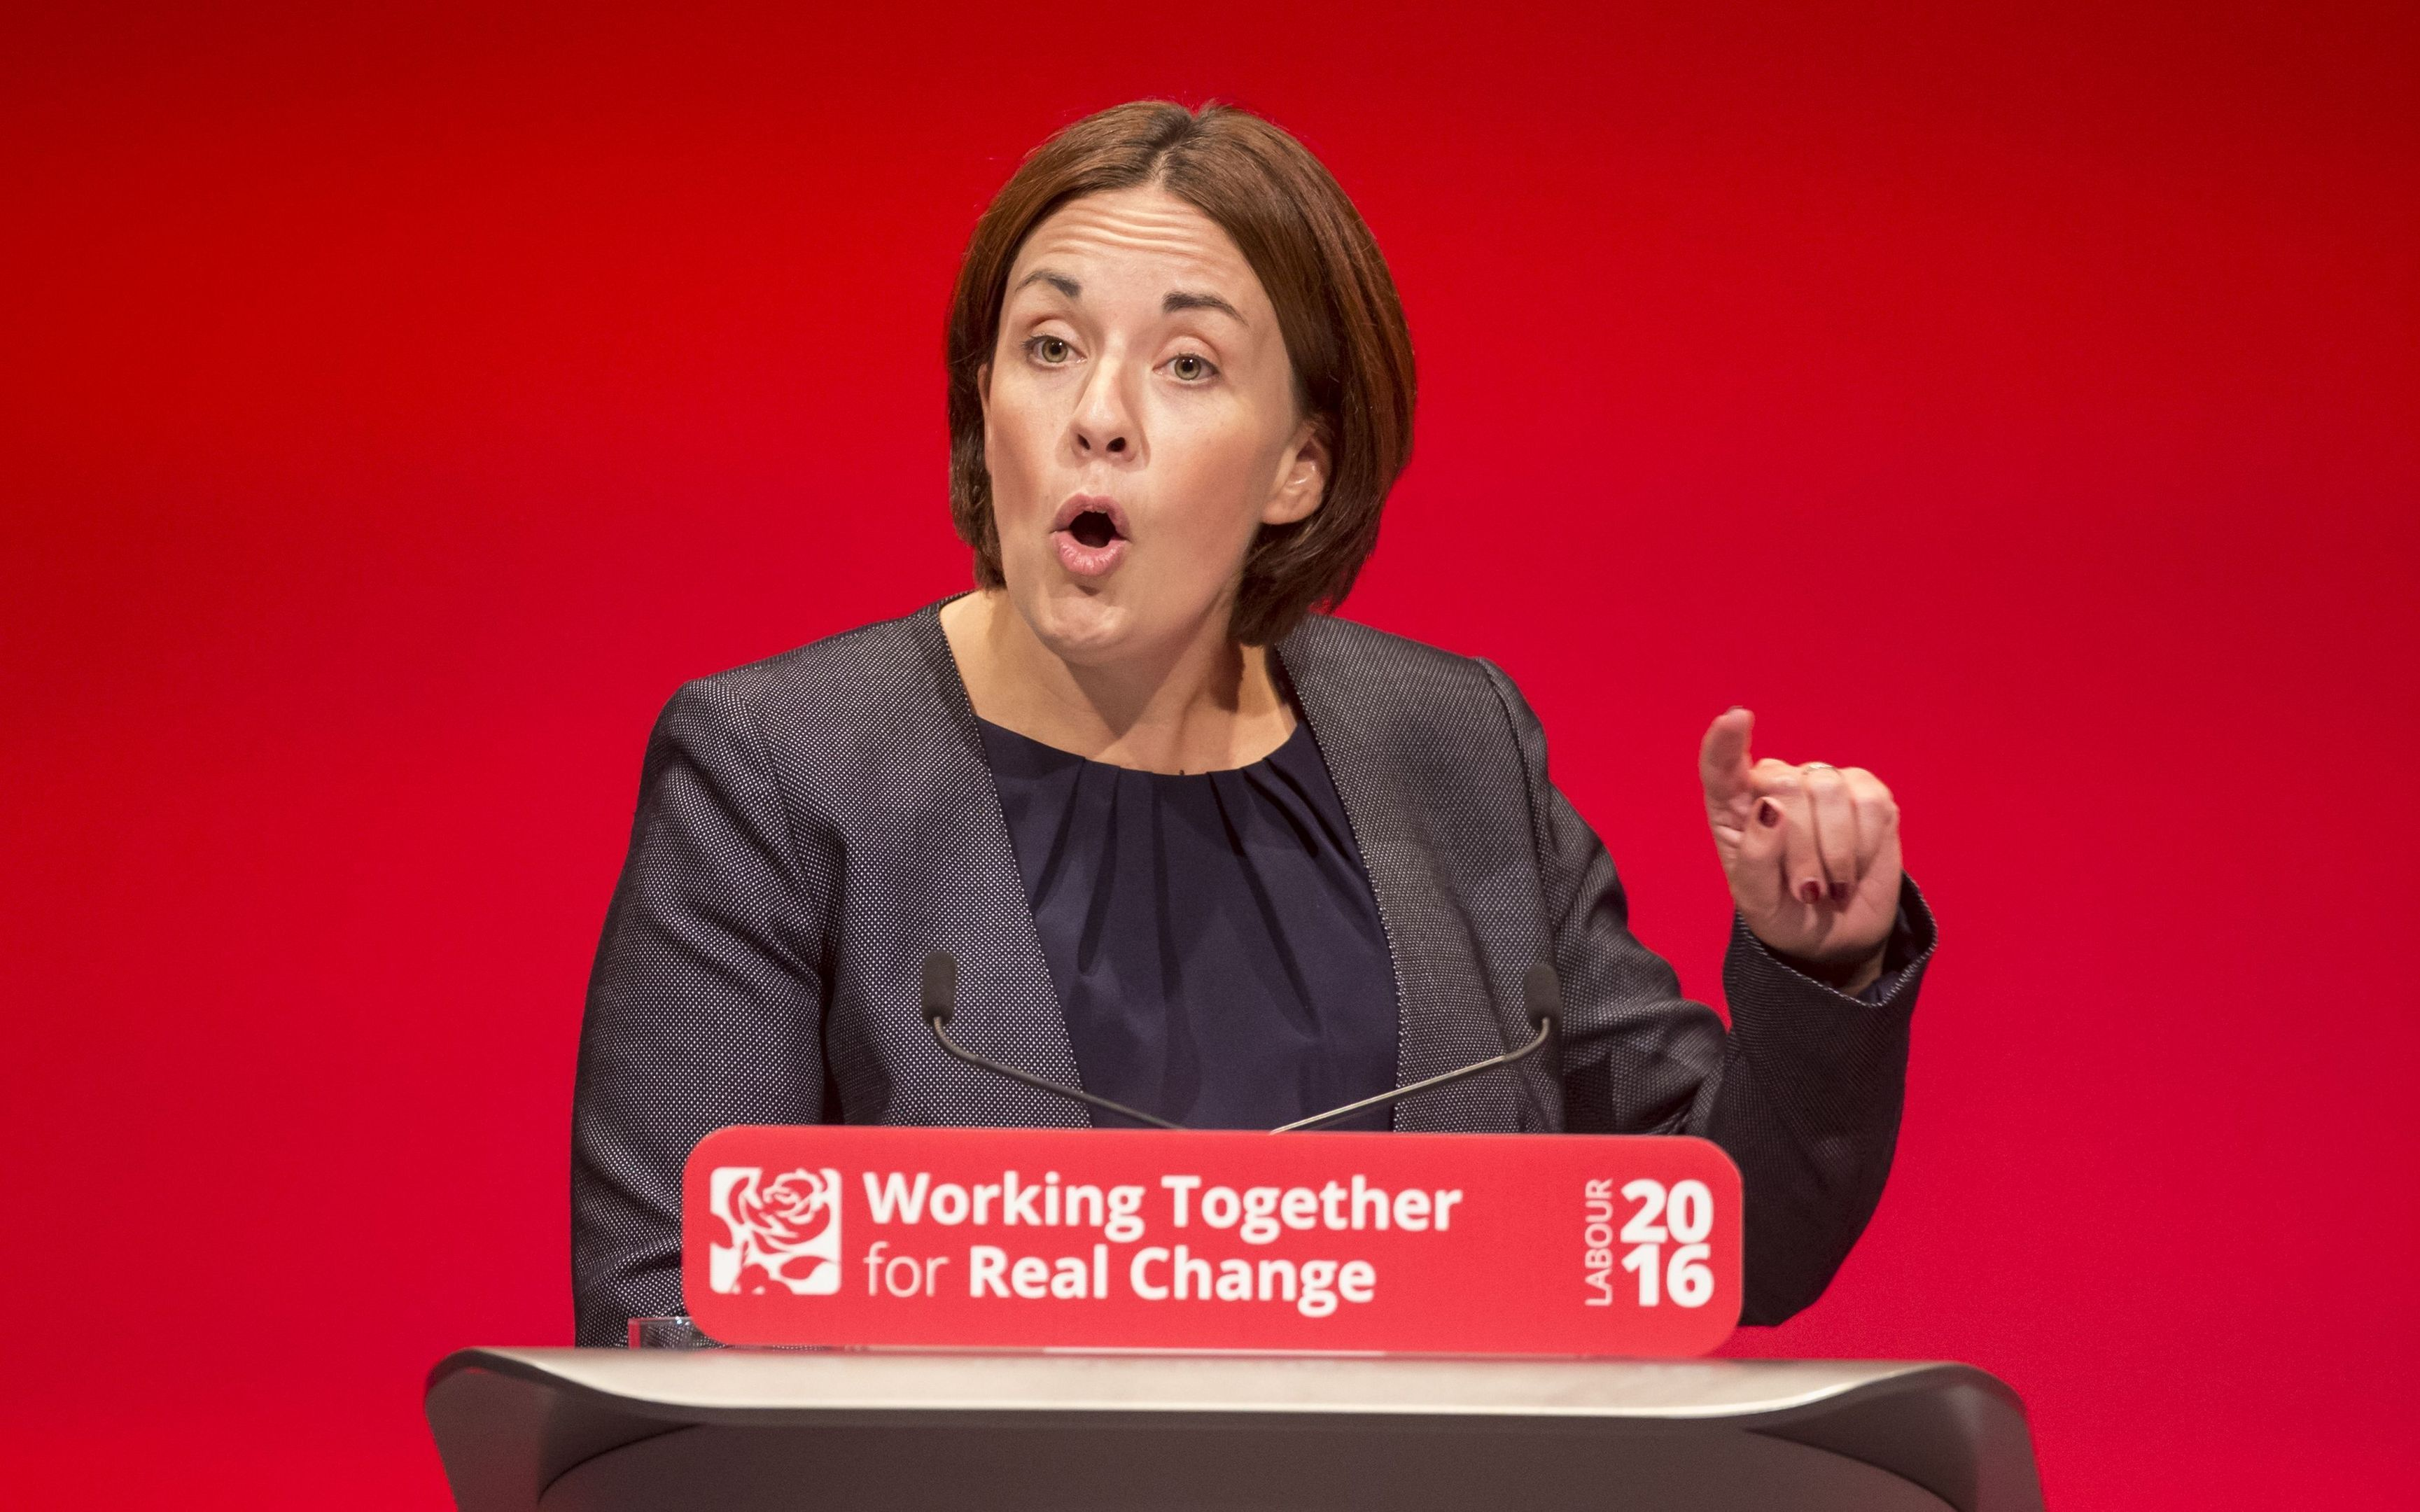 Scottish Labour Leader Kezia Dugdale speaks at the Scottish Labour conference (Danny Lawson/PA Wire)